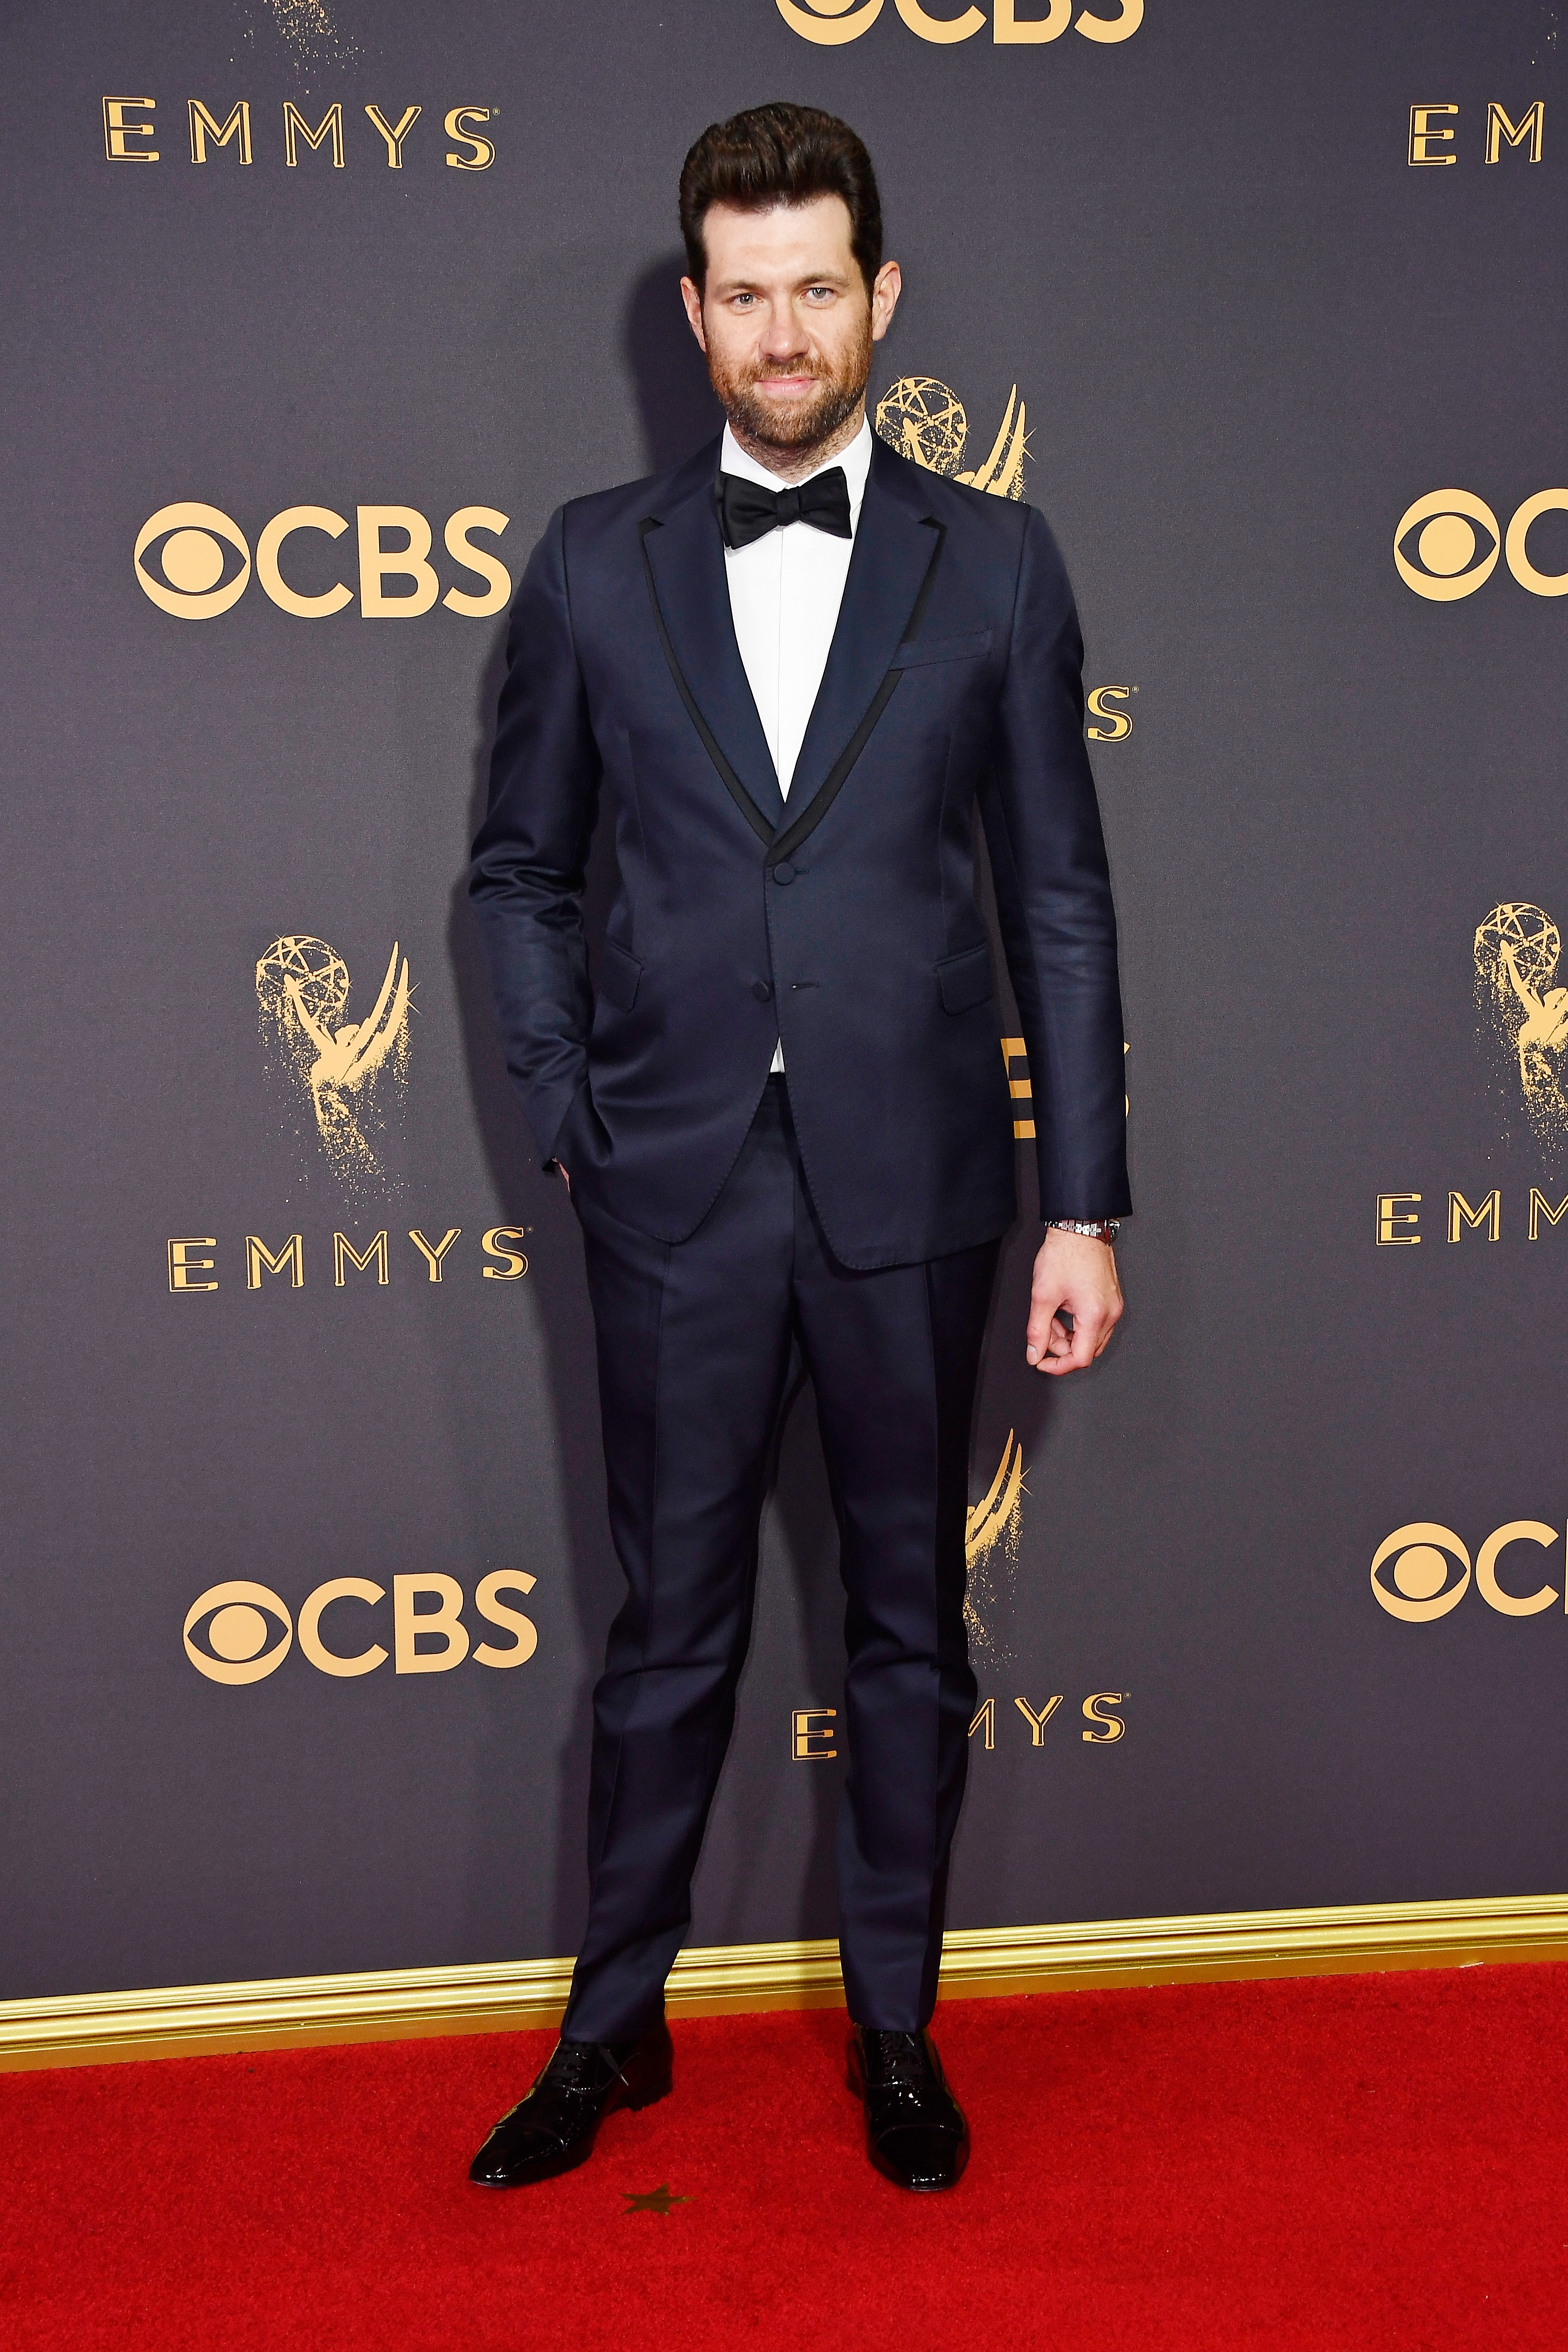 Actor Billy Eichner attends the 69th Annual Primetime Emmy Awards at Microsoft Theater on Sept. 17, 2017 in Los Angeles.